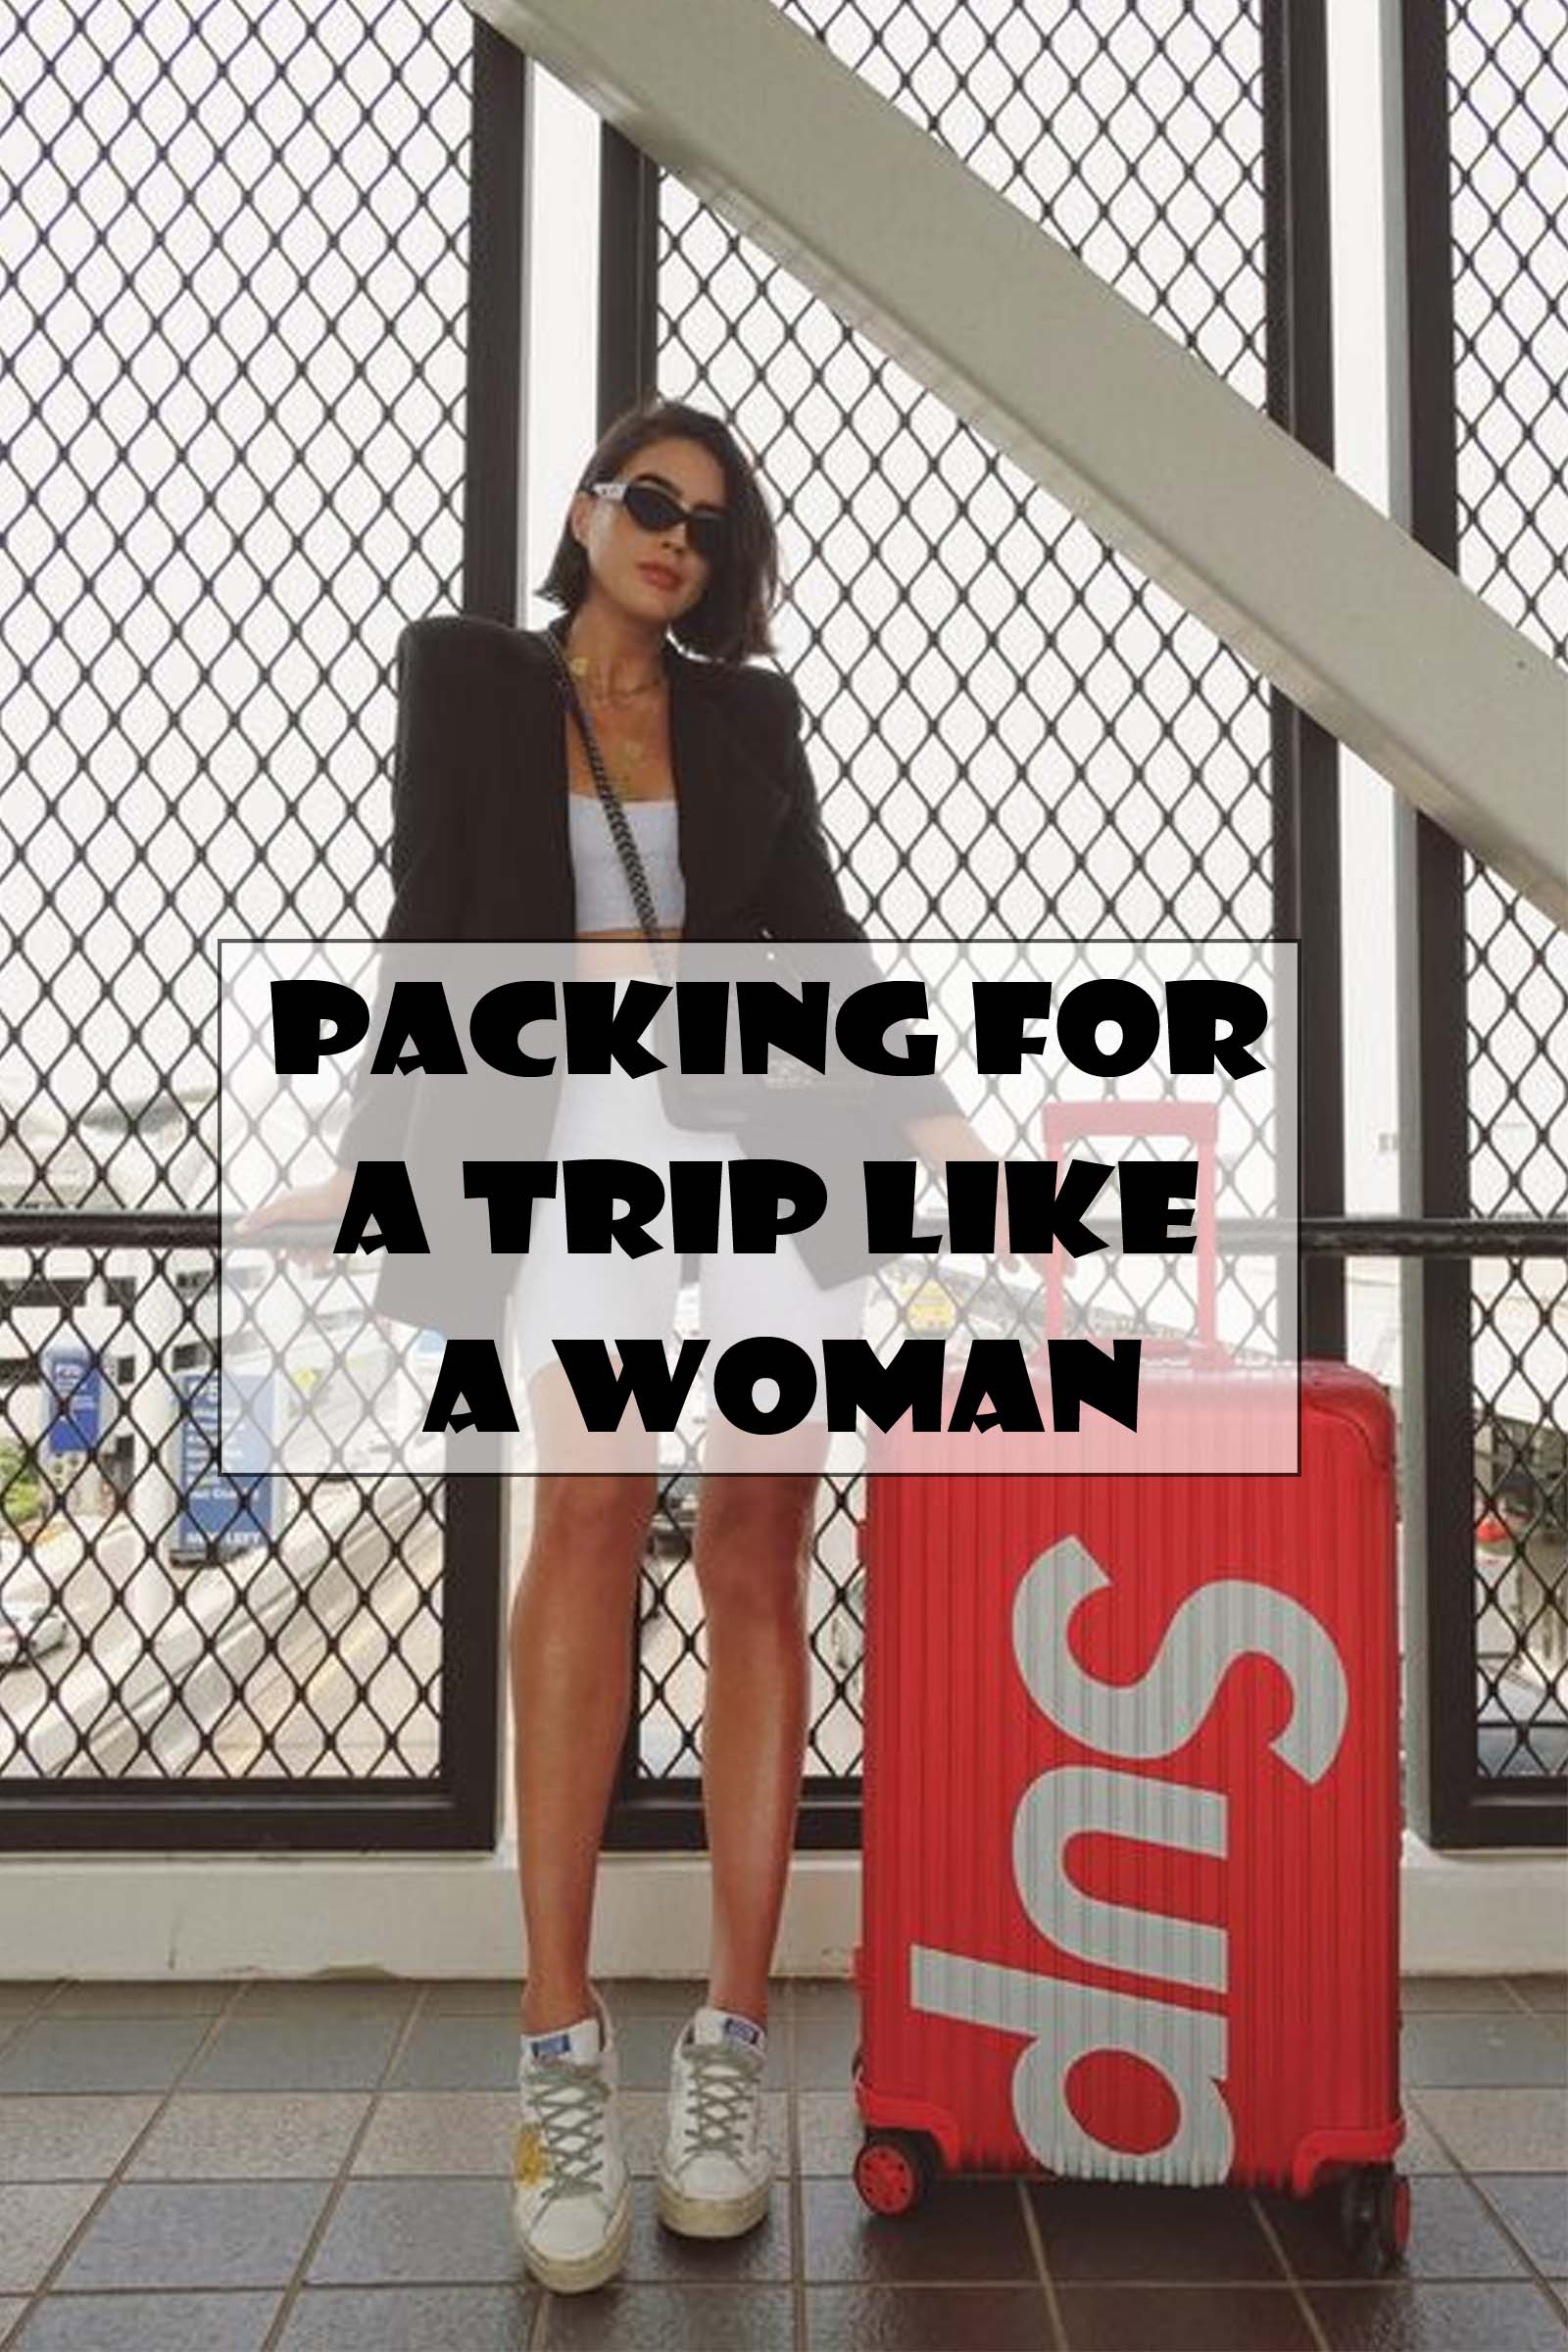 Packing for a trip like a woman